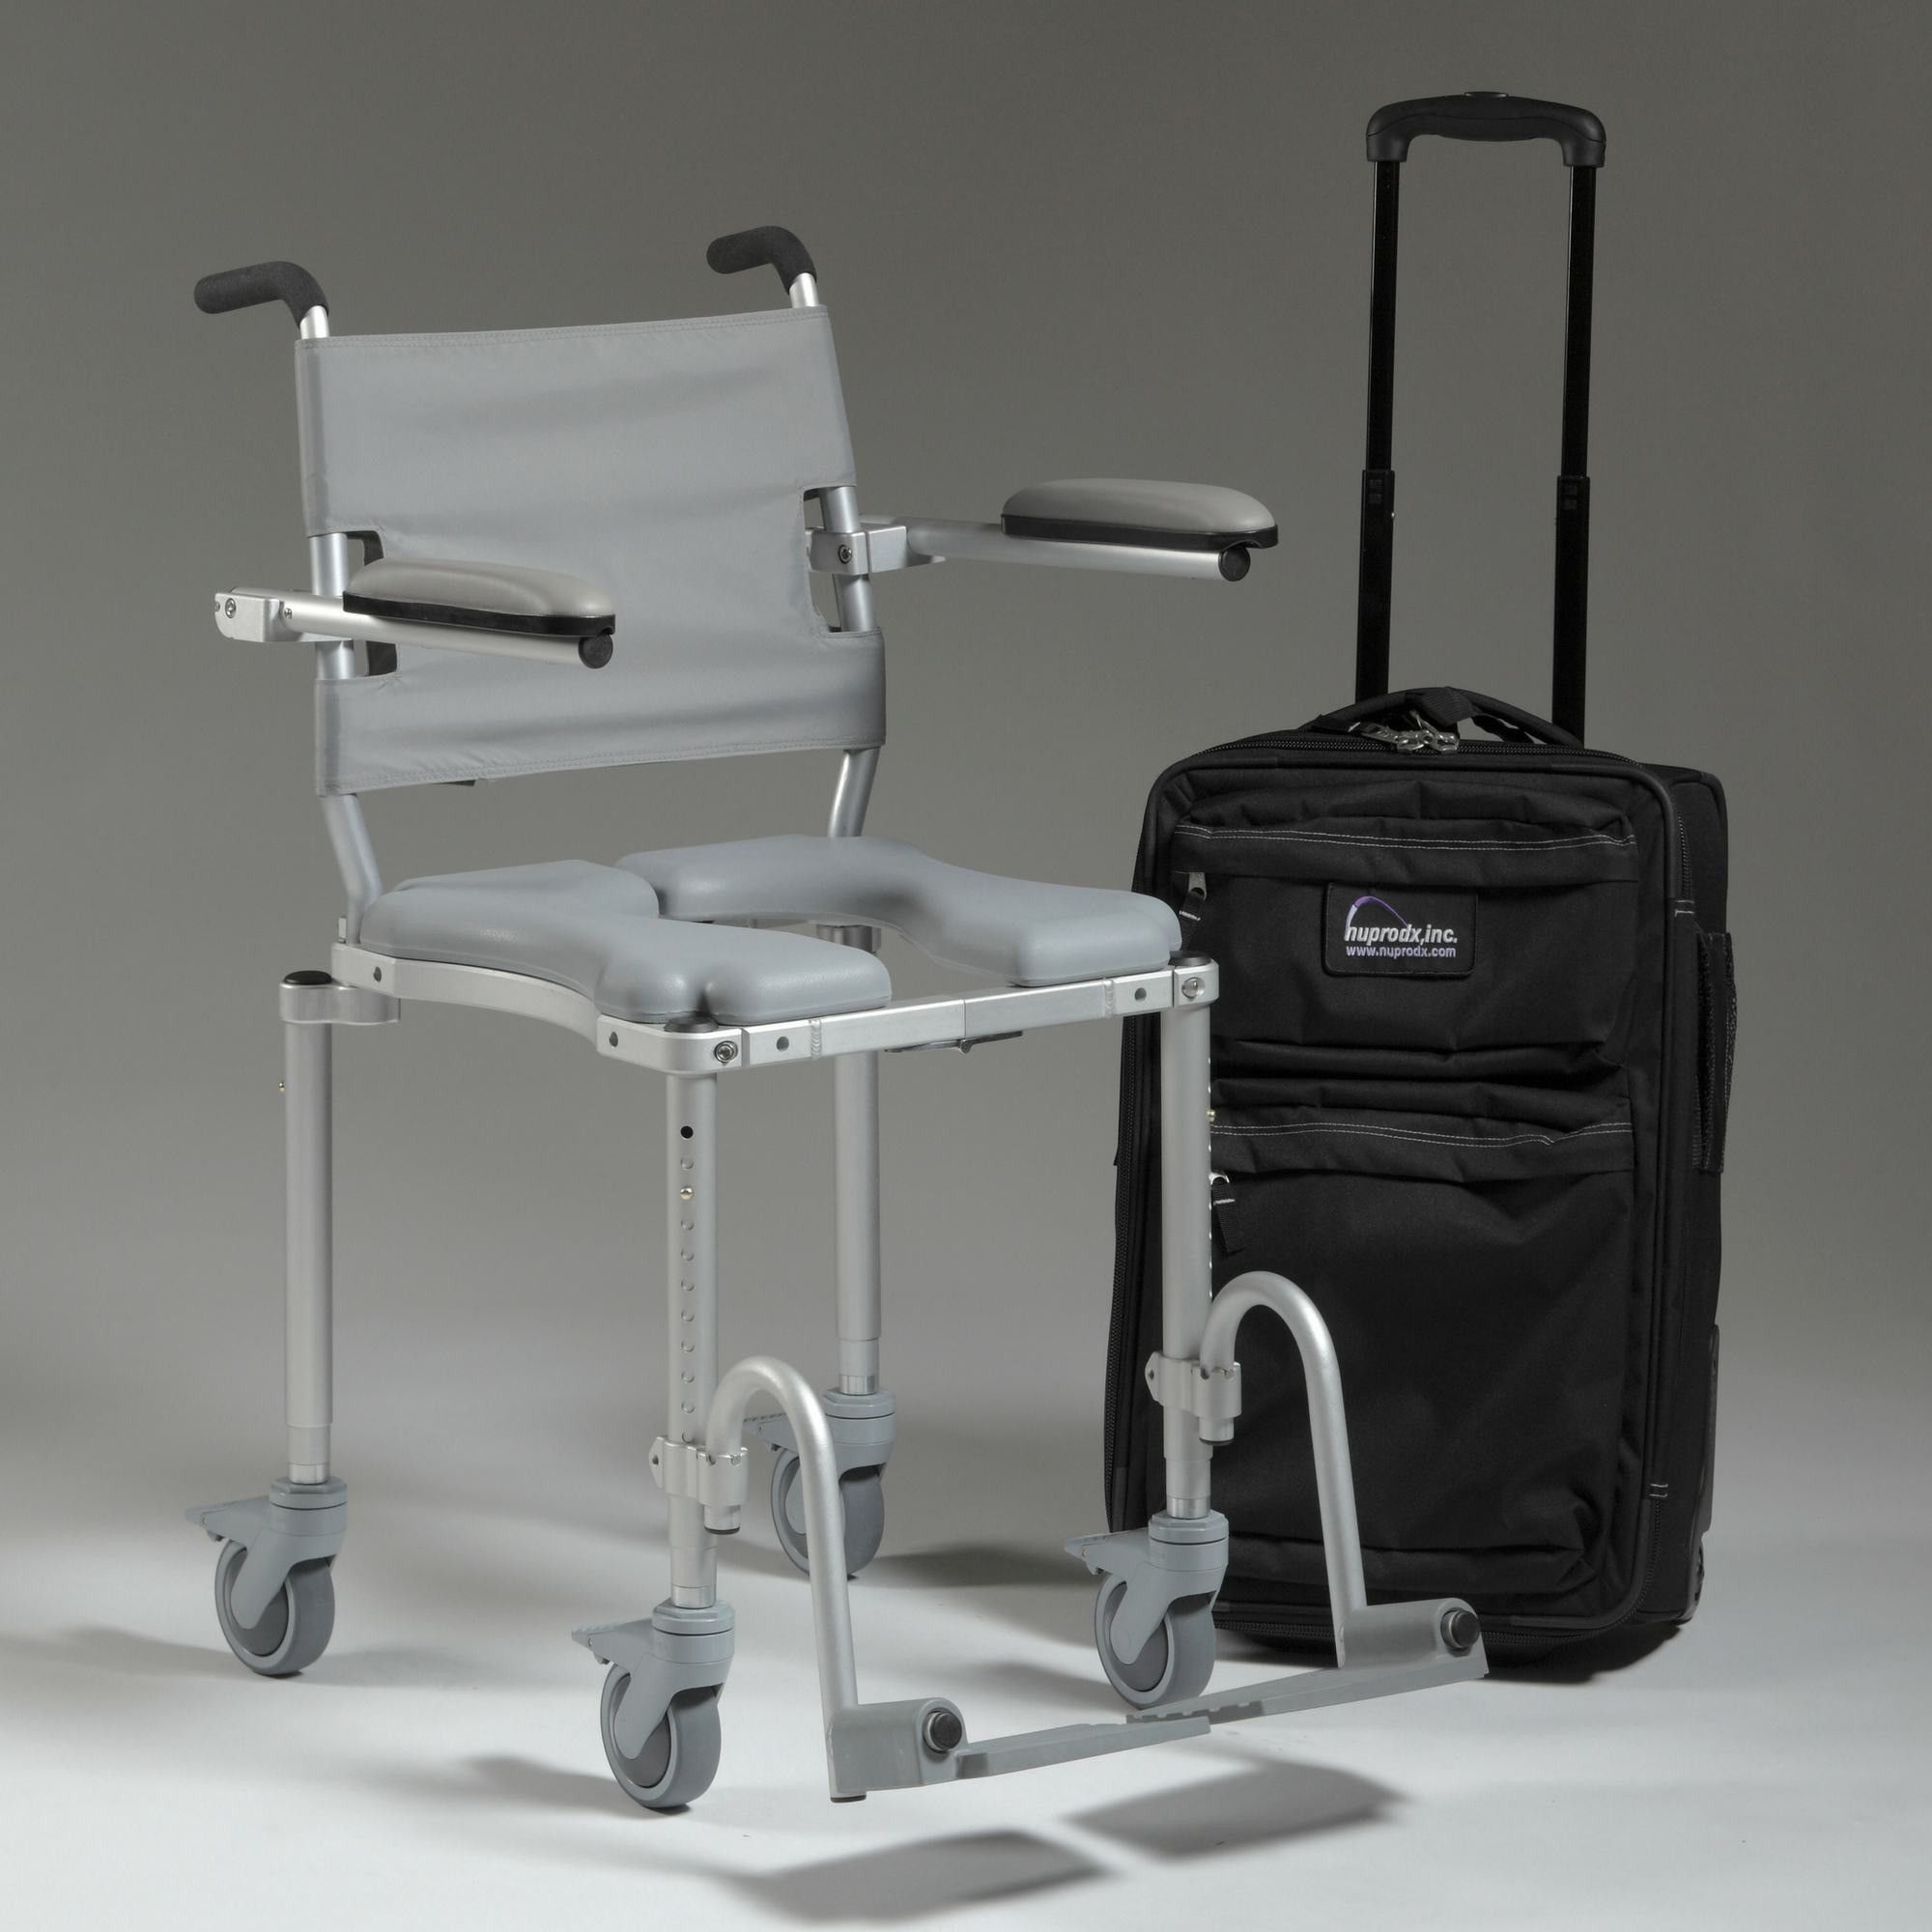 MultiChair 4000Tx Shower Chair With Wheels And Padded Seat